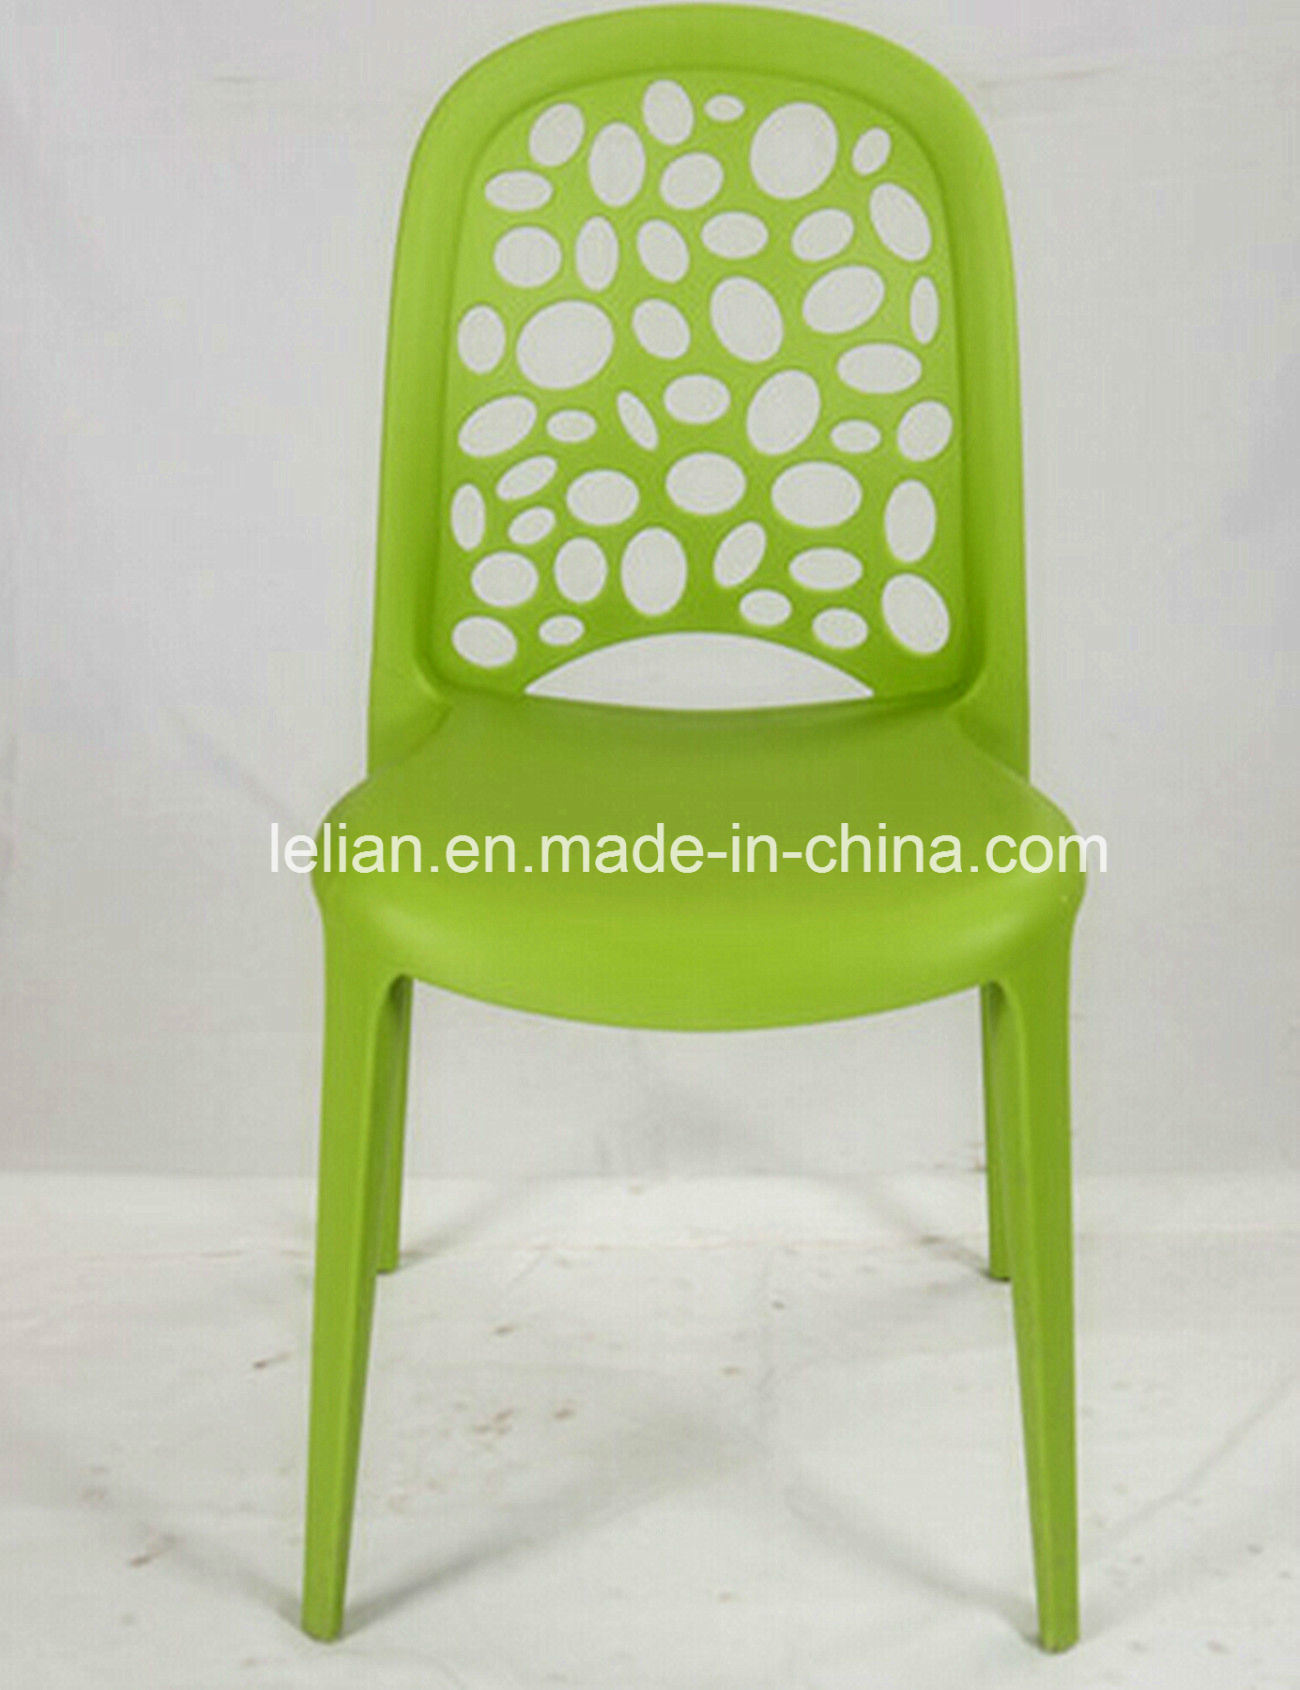 Colorful Plastic Stacking Side Garden Chair (LL-0037)